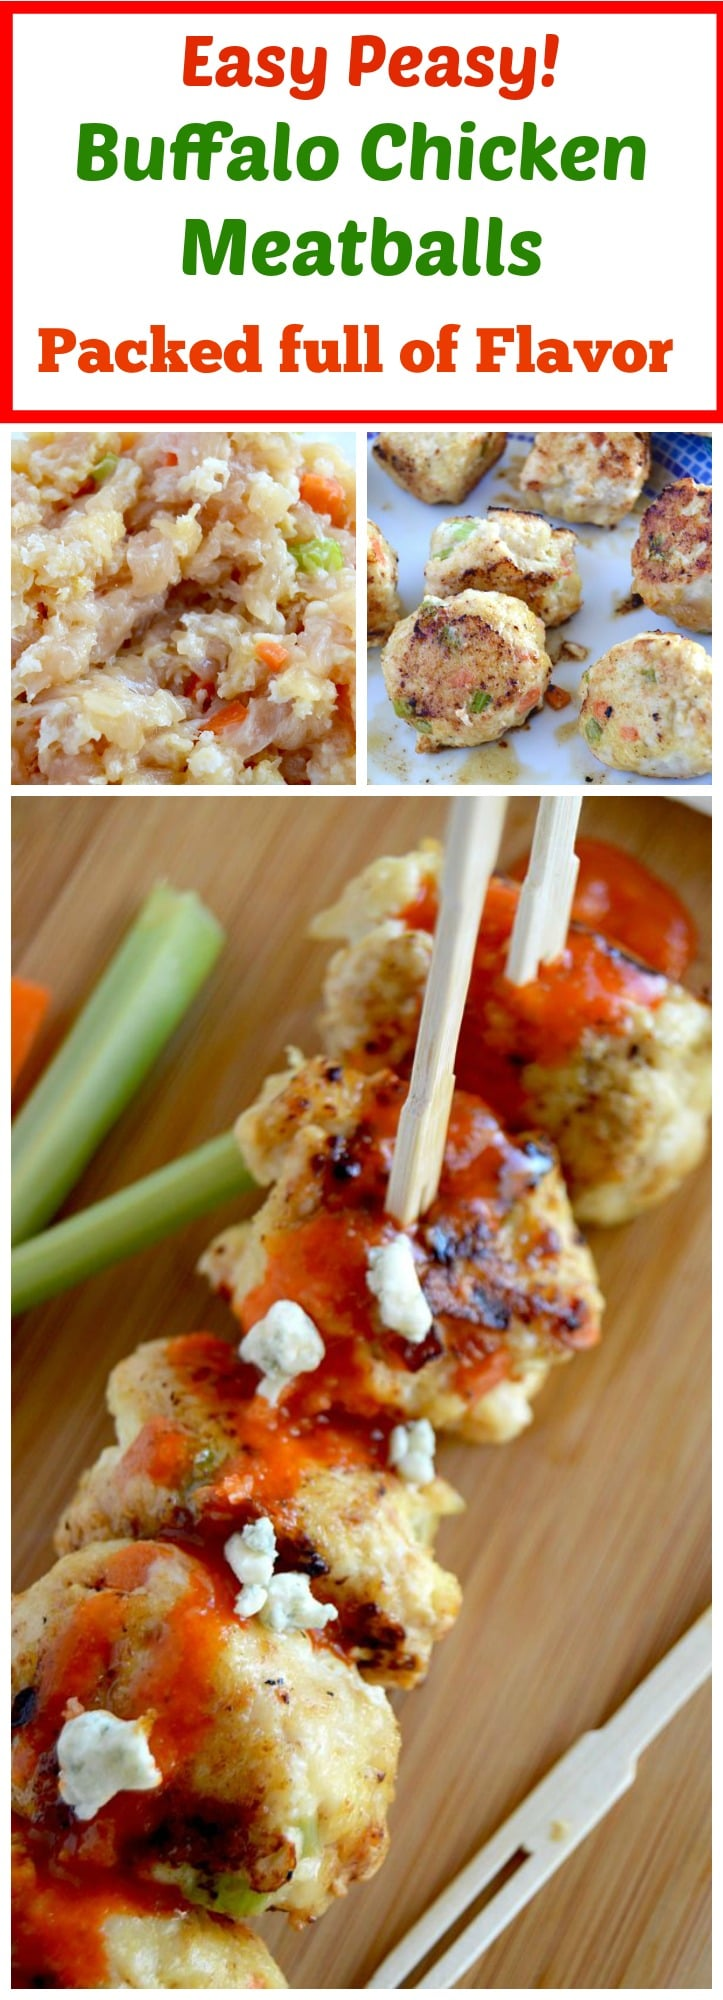 Looking for a lot of protein in your diet.... low carb, easy and healthy and full of flavor? These Buffalo Chicken meatballs are the perfect addition to your healthy eating needs! A healthy chicken wing alternative, packed full of flavor with out all the extra calories.